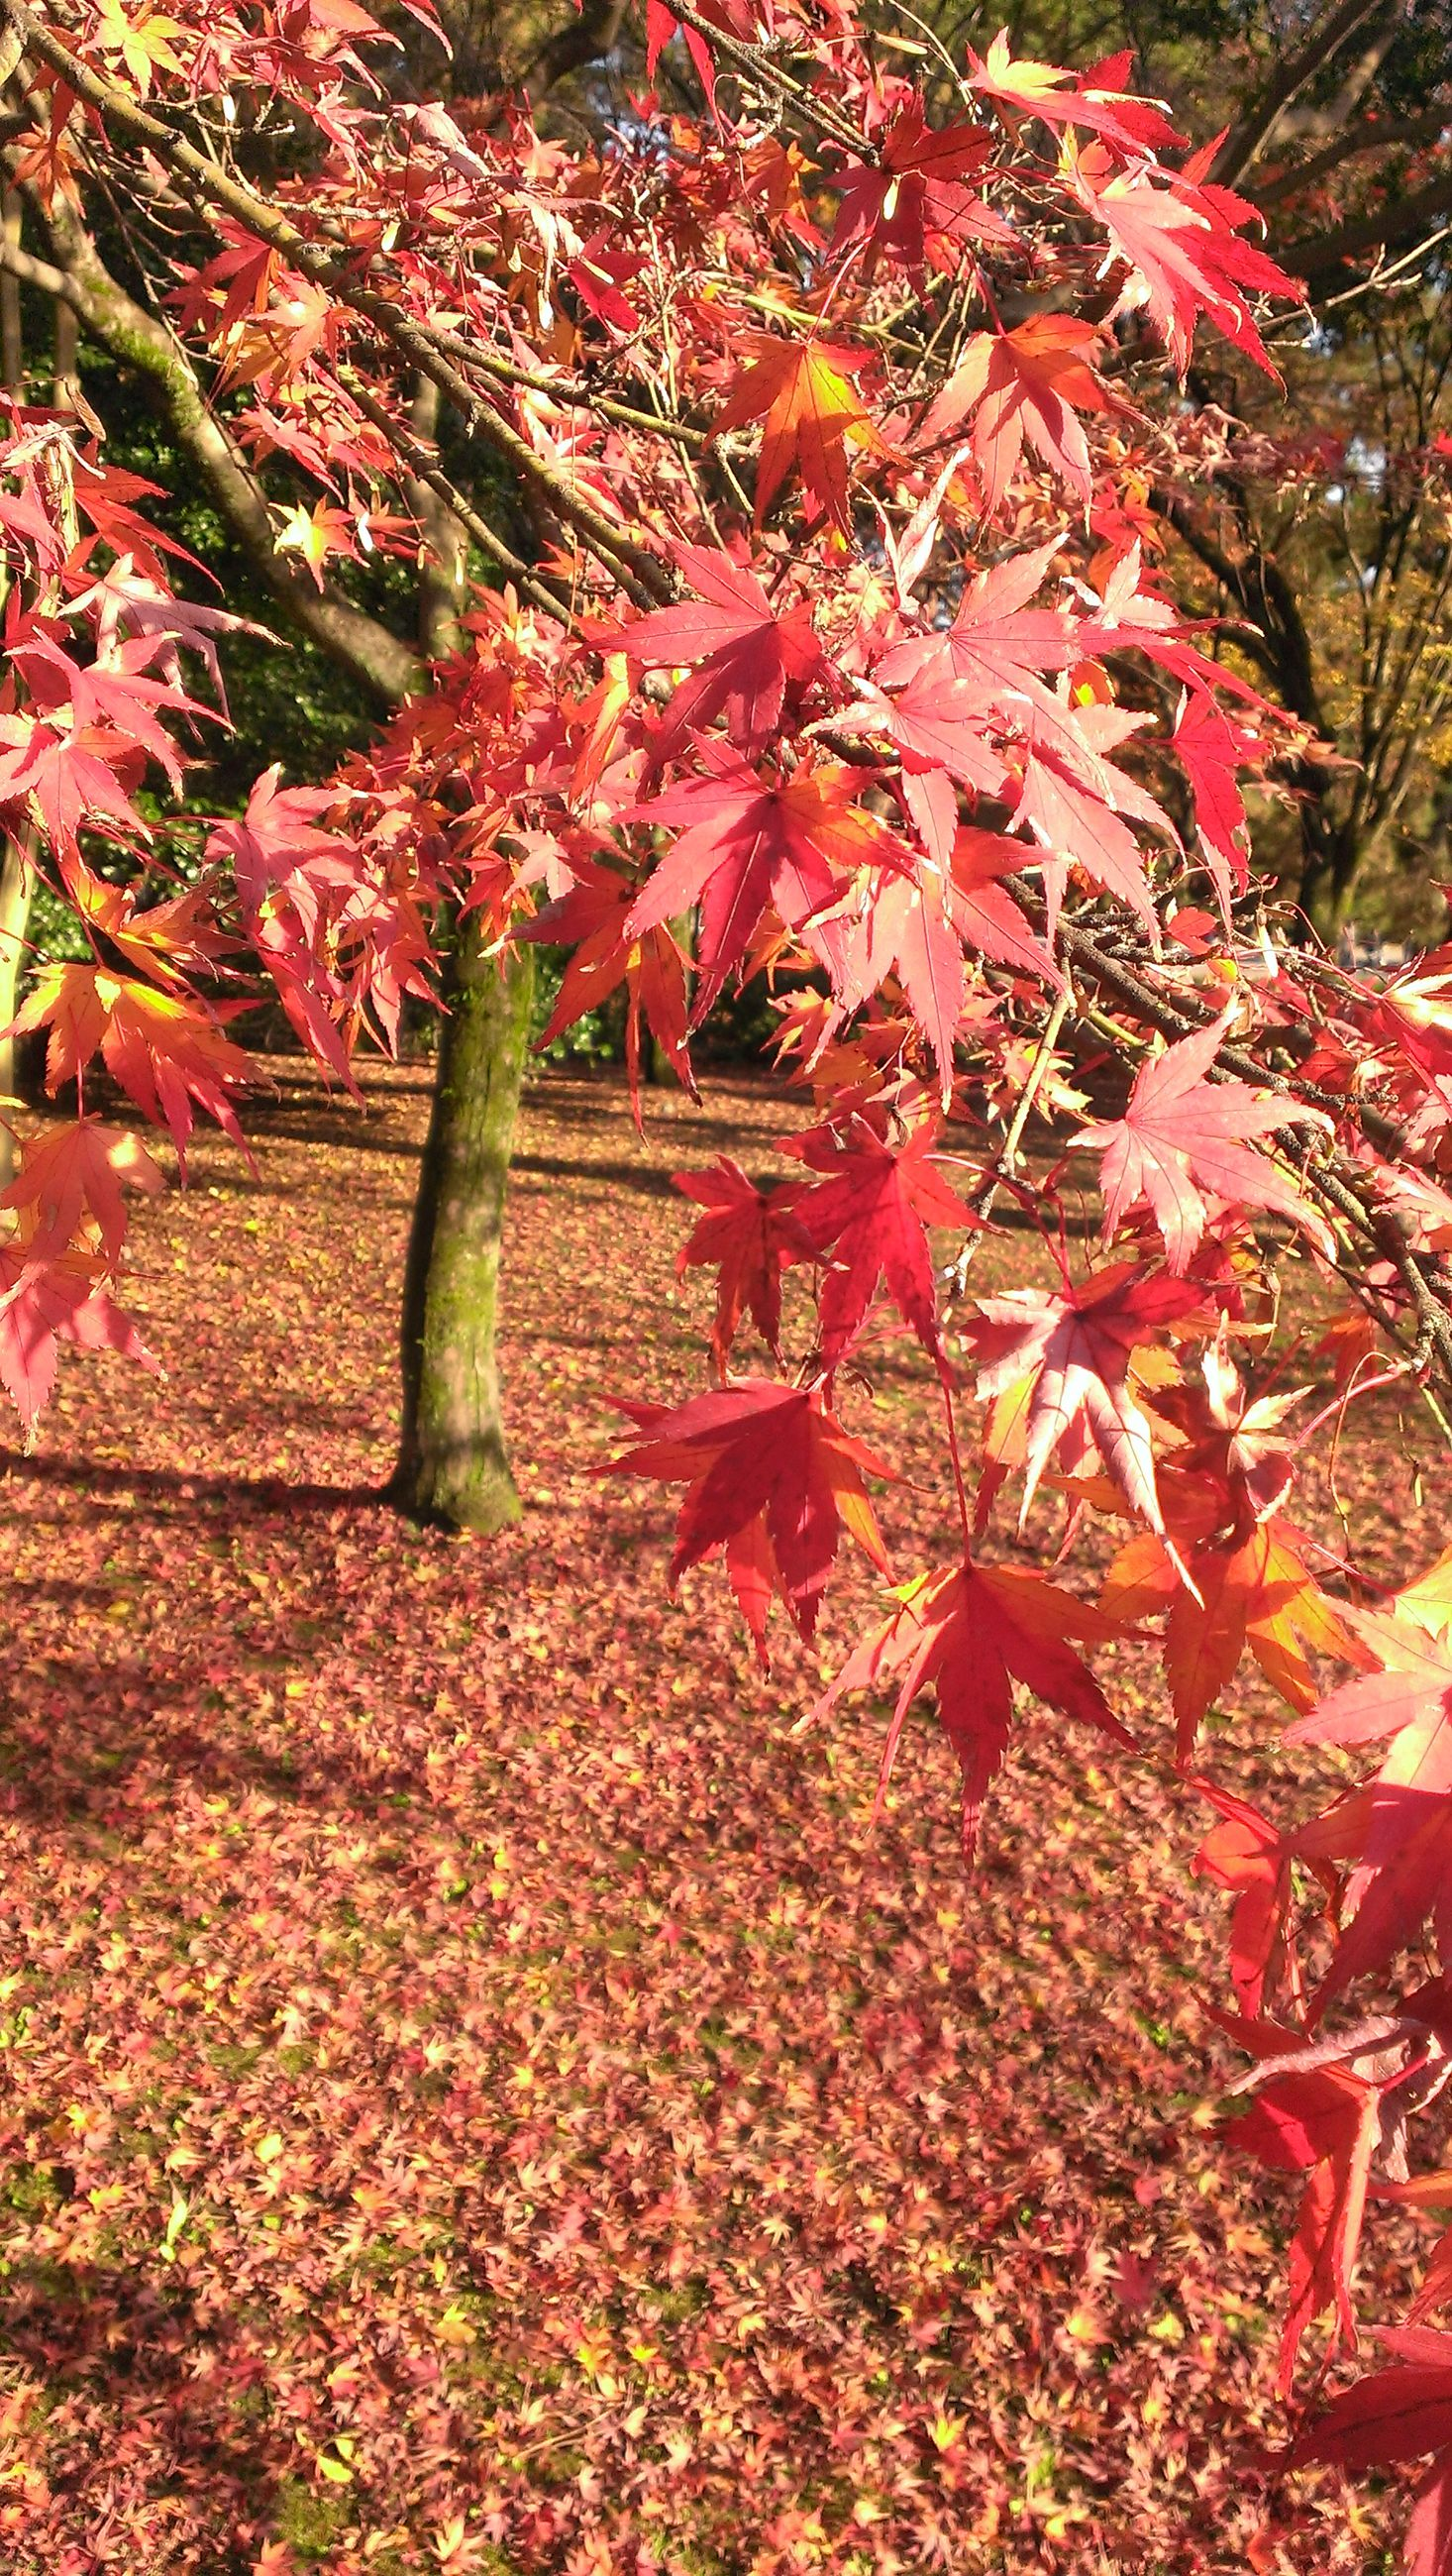 flower, growth, leaf, autumn, red, change, season, nature, plant, beauty in nature, freshness, high angle view, day, tree, outdoors, fragility, park - man made space, abundance, no people, pink color